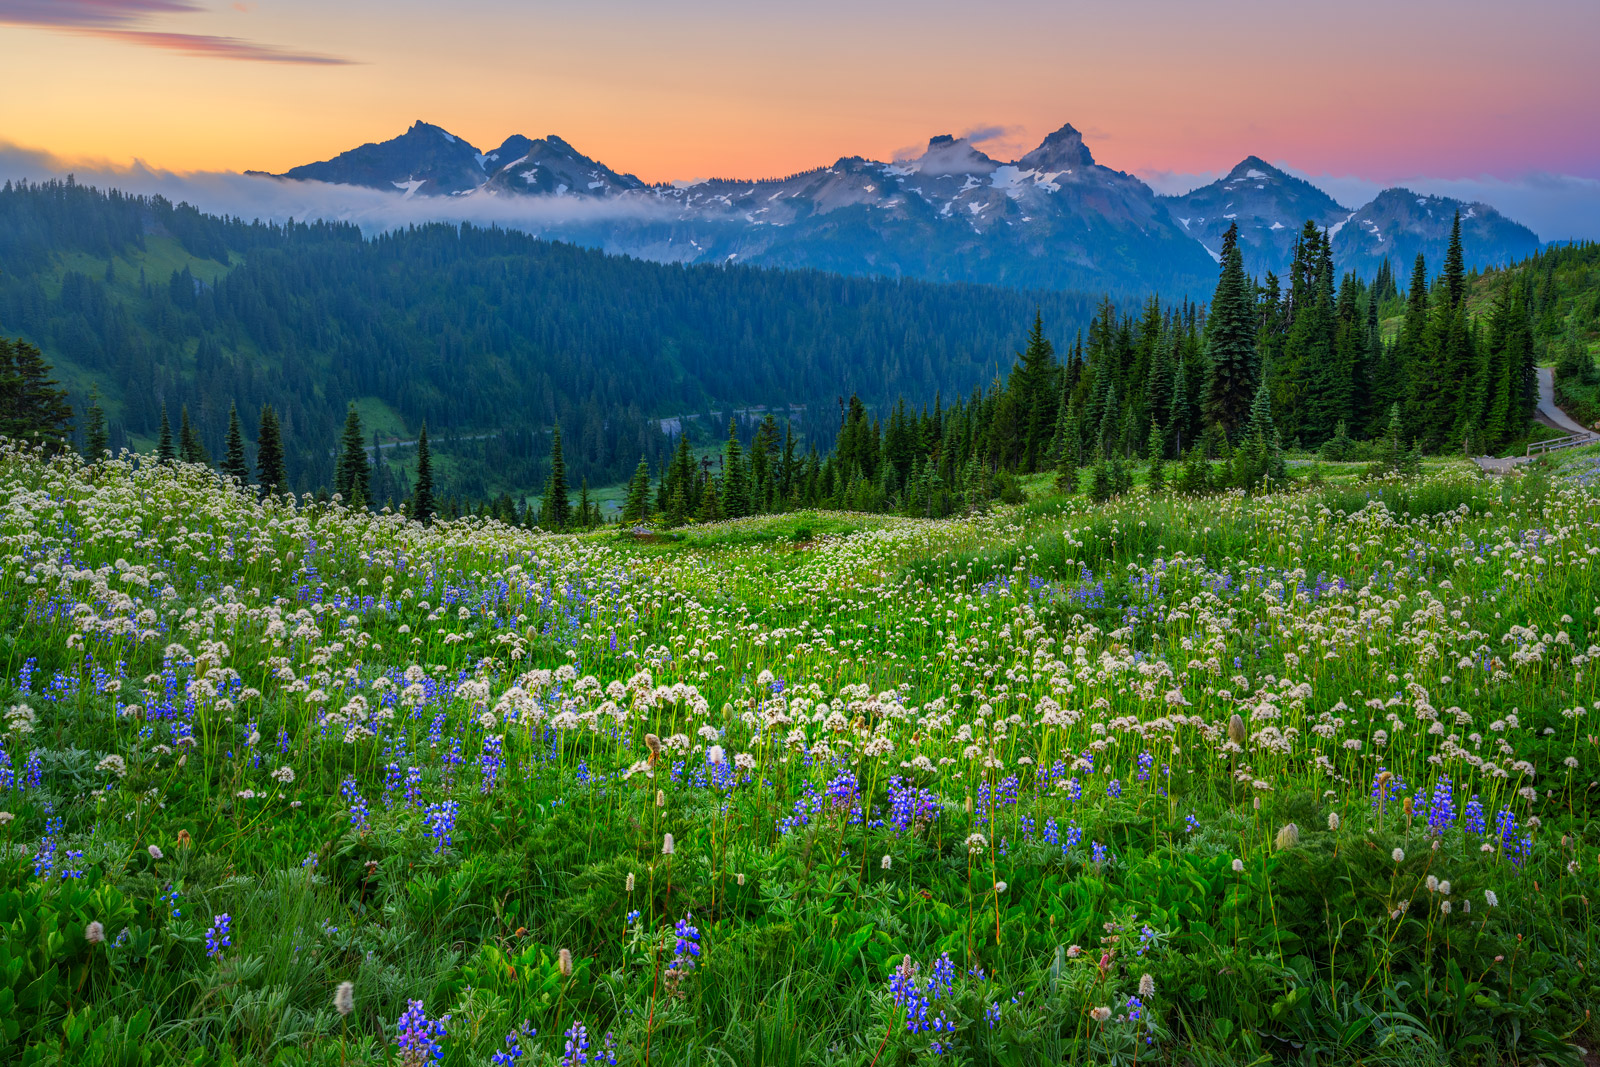 Washington, Rainier, Mount Rainier, flowers, Tatoosh, Range, Mountains, National Park